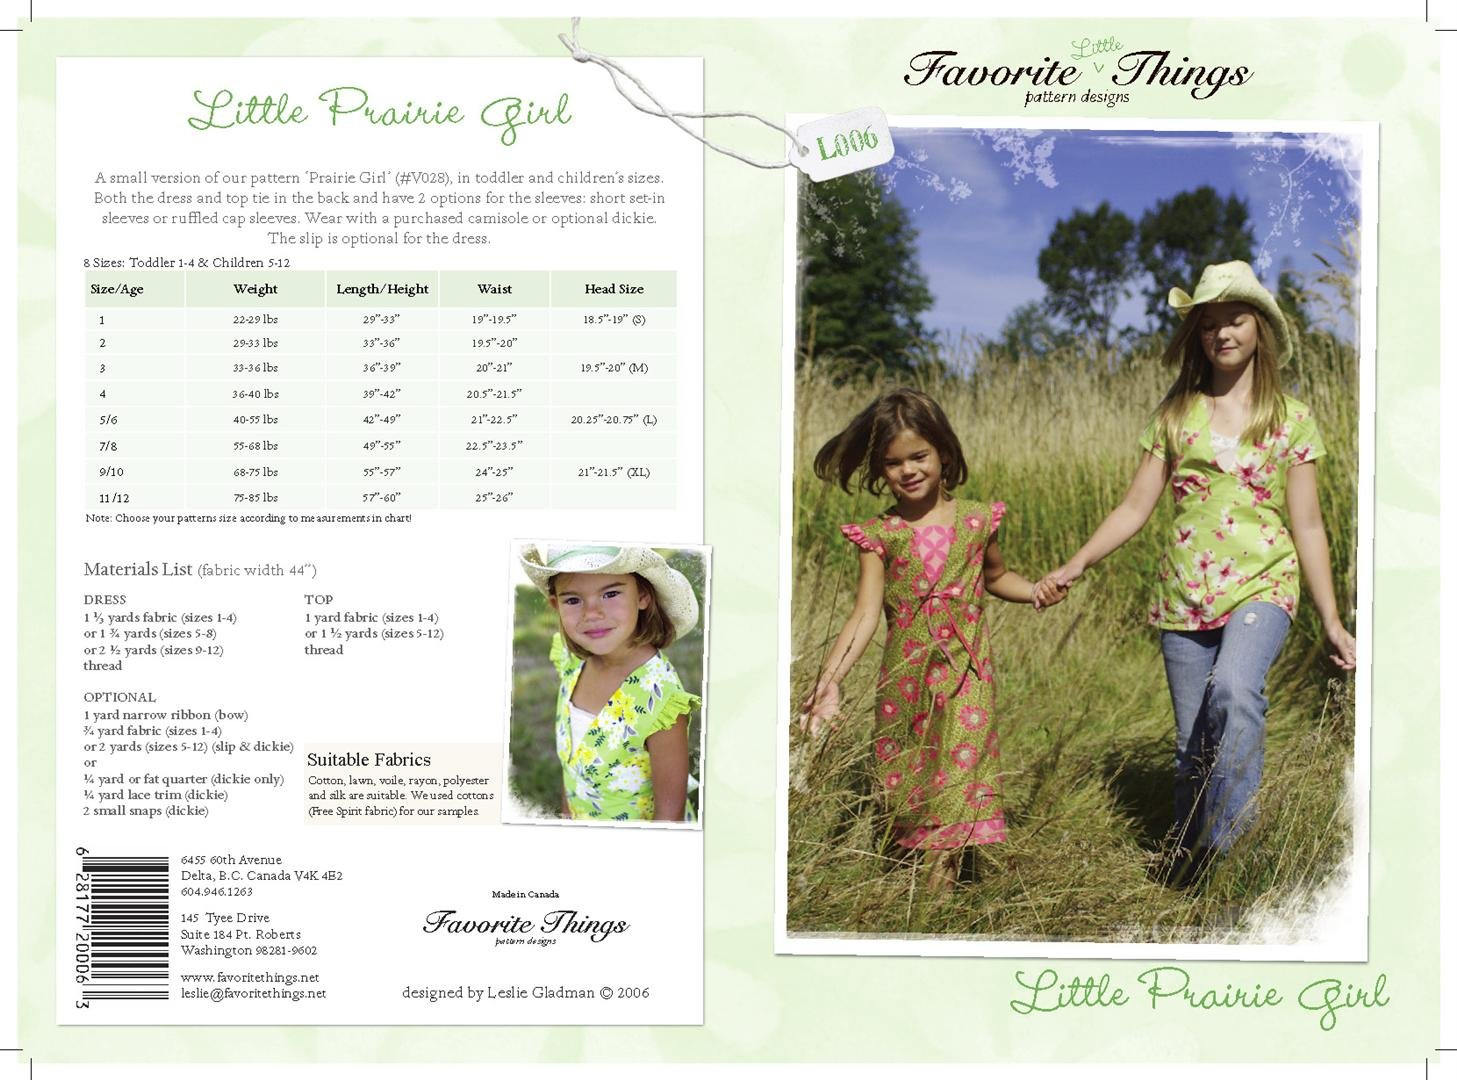 Little Prairie Girl